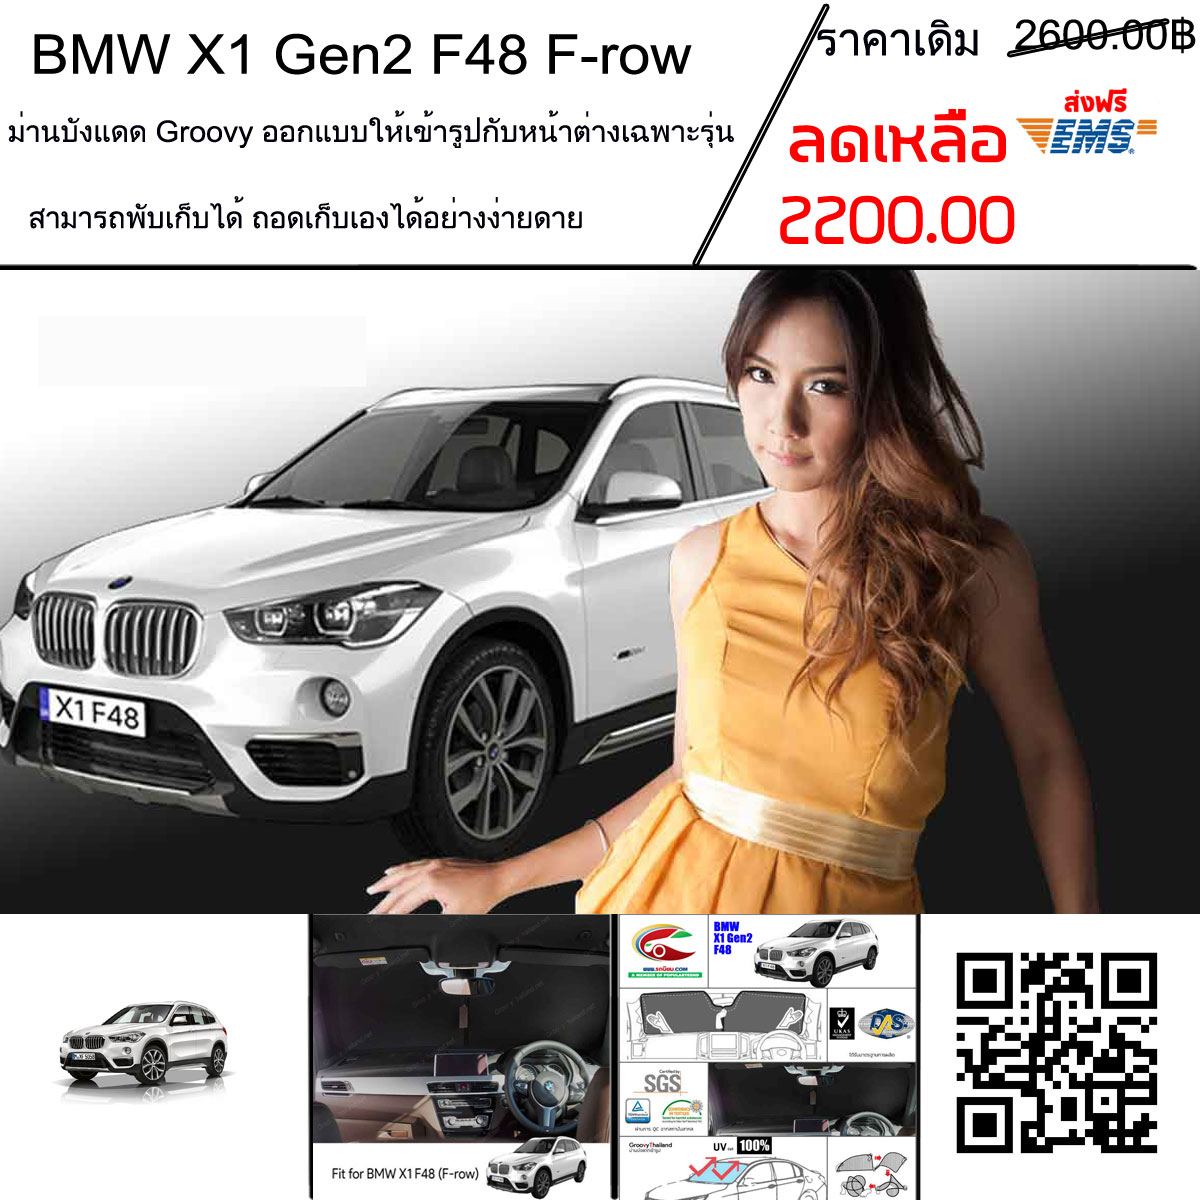 BMW X1 Gen2 F48 F-row (1 pcs)